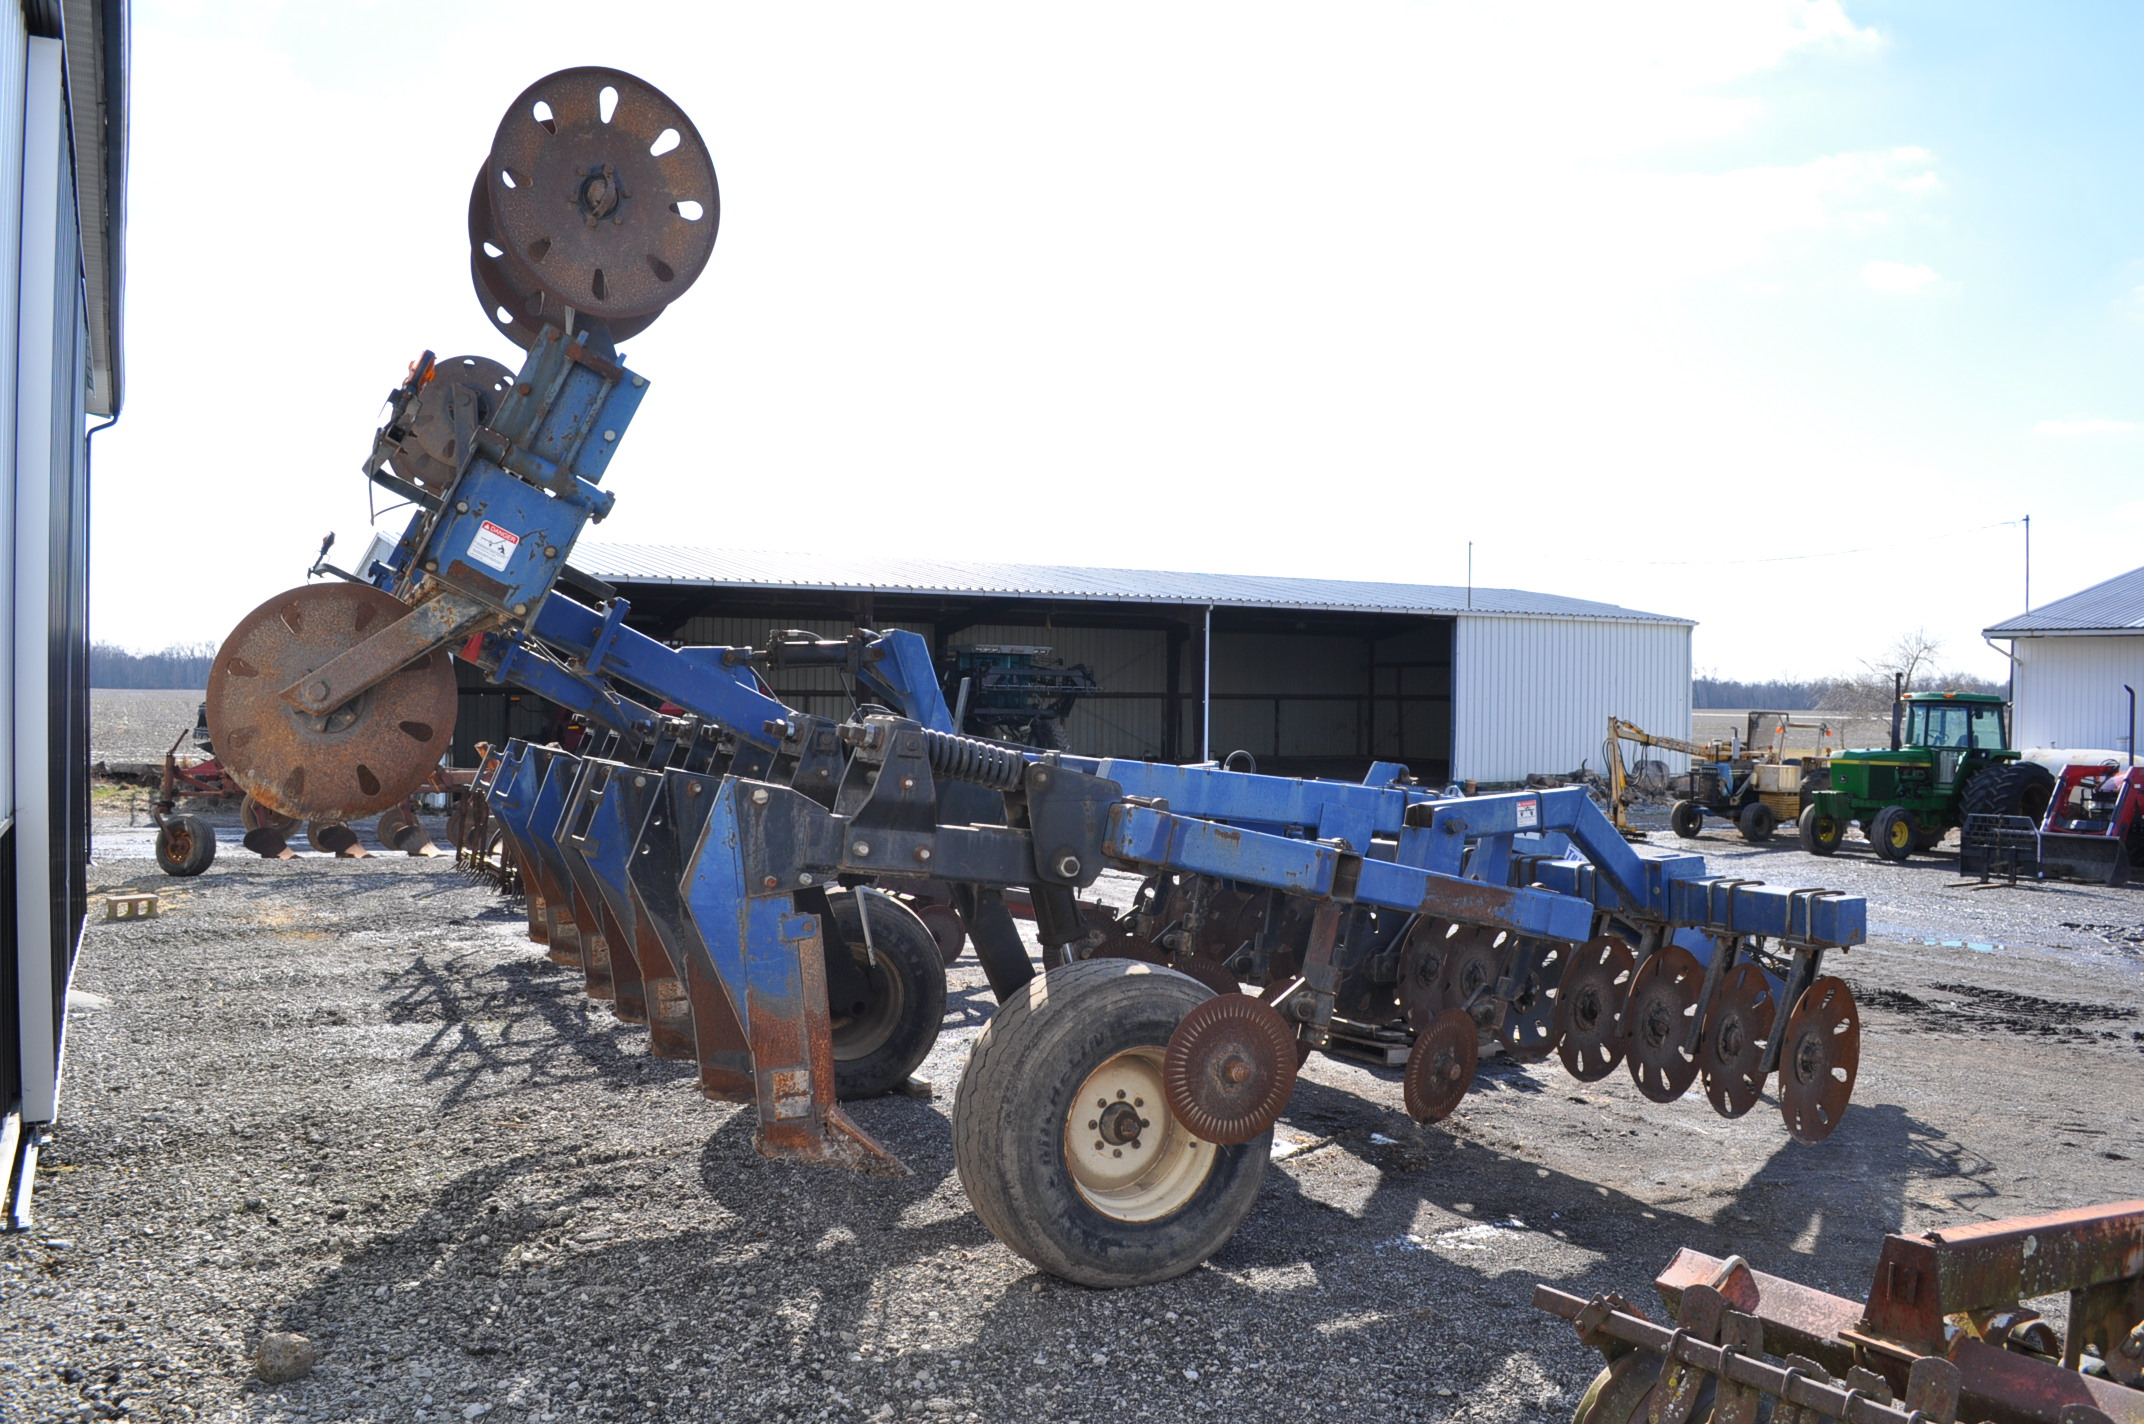 Blu-Jet Tillage Pro 7 shank inline ripper, front and rear hyd adjustable discs, sells with extra - Image 3 of 18